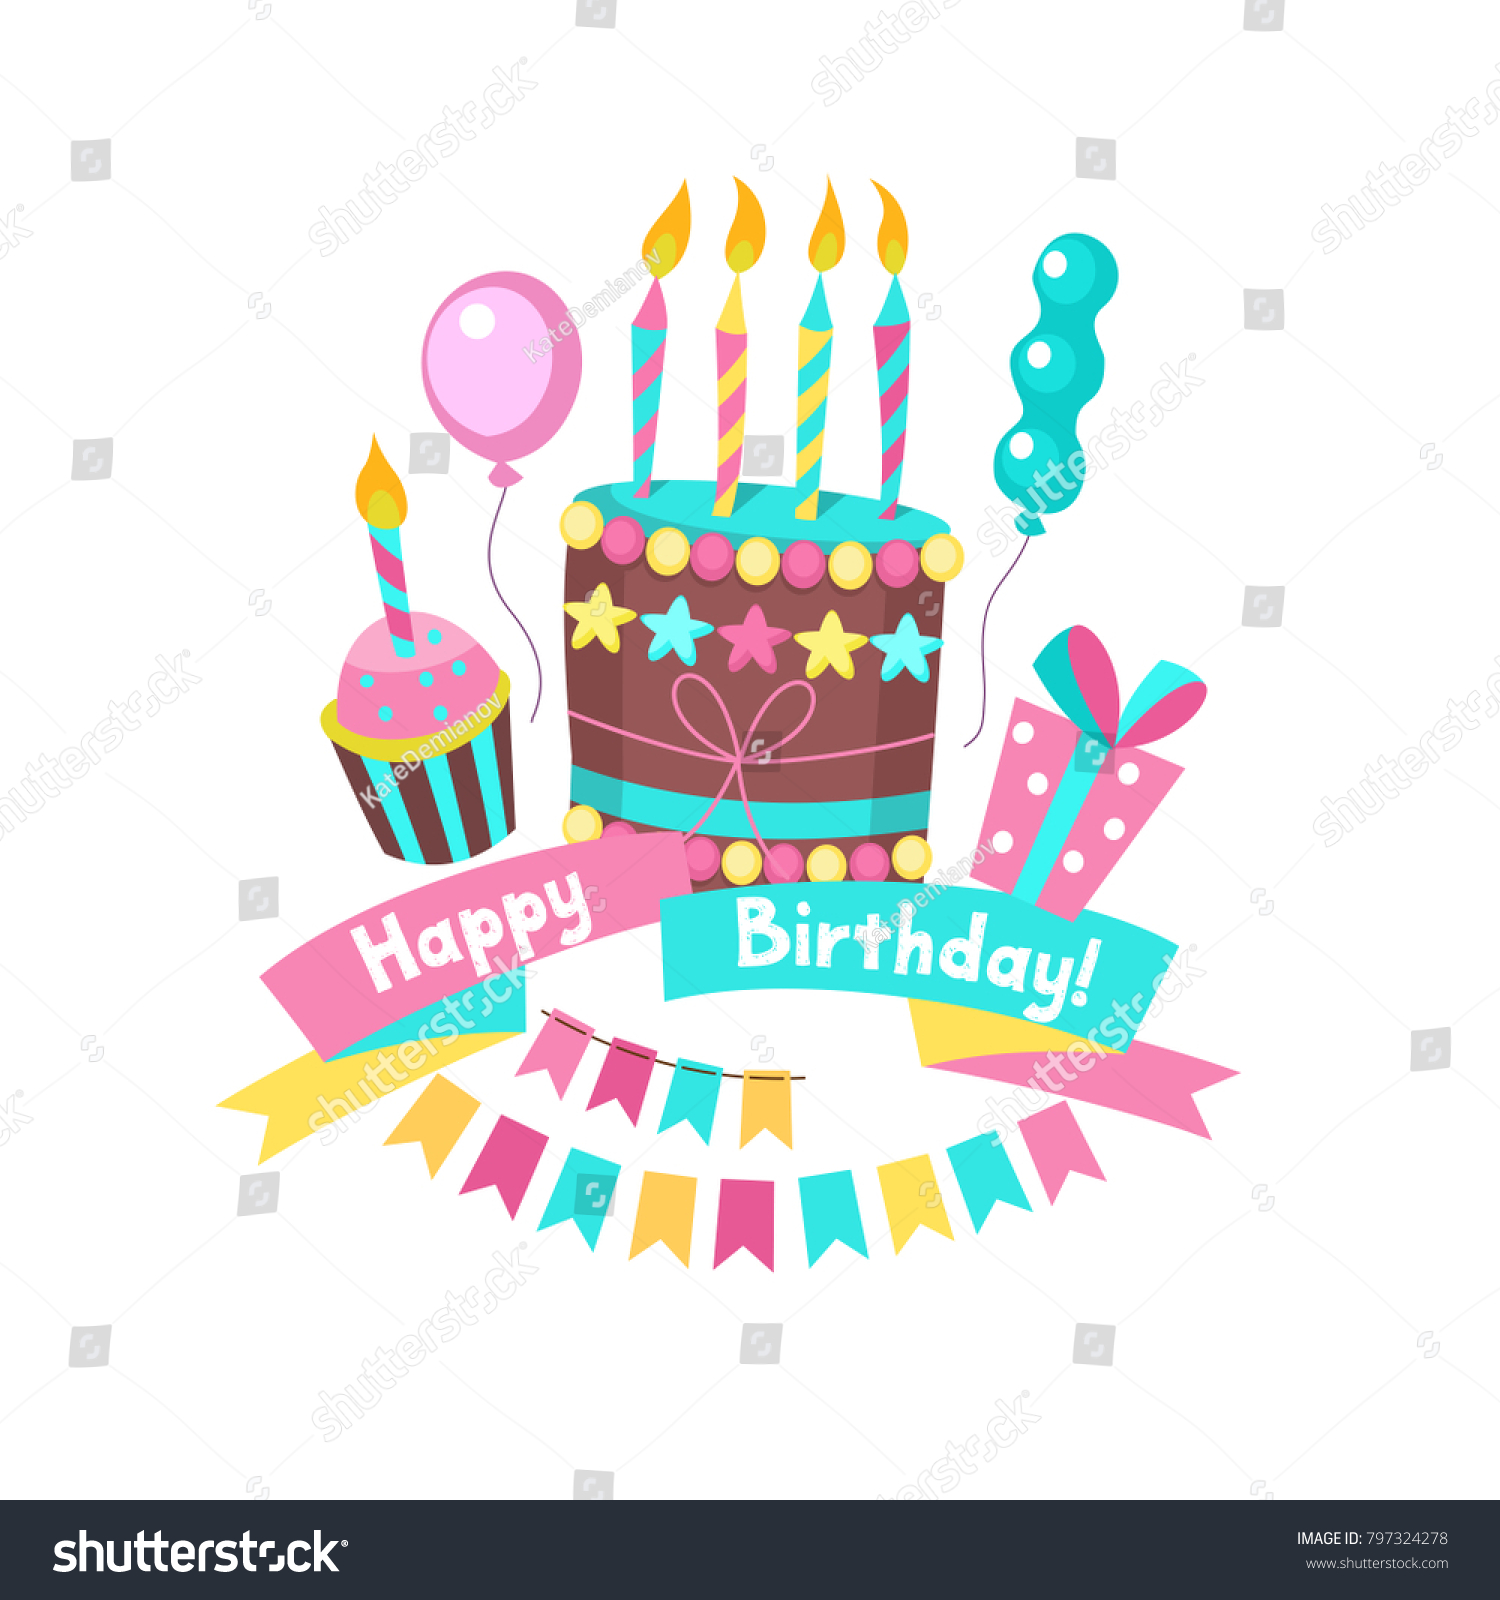 Happy birthday greeting cards cake with candles ribbons balloons id 797324278 m4hsunfo